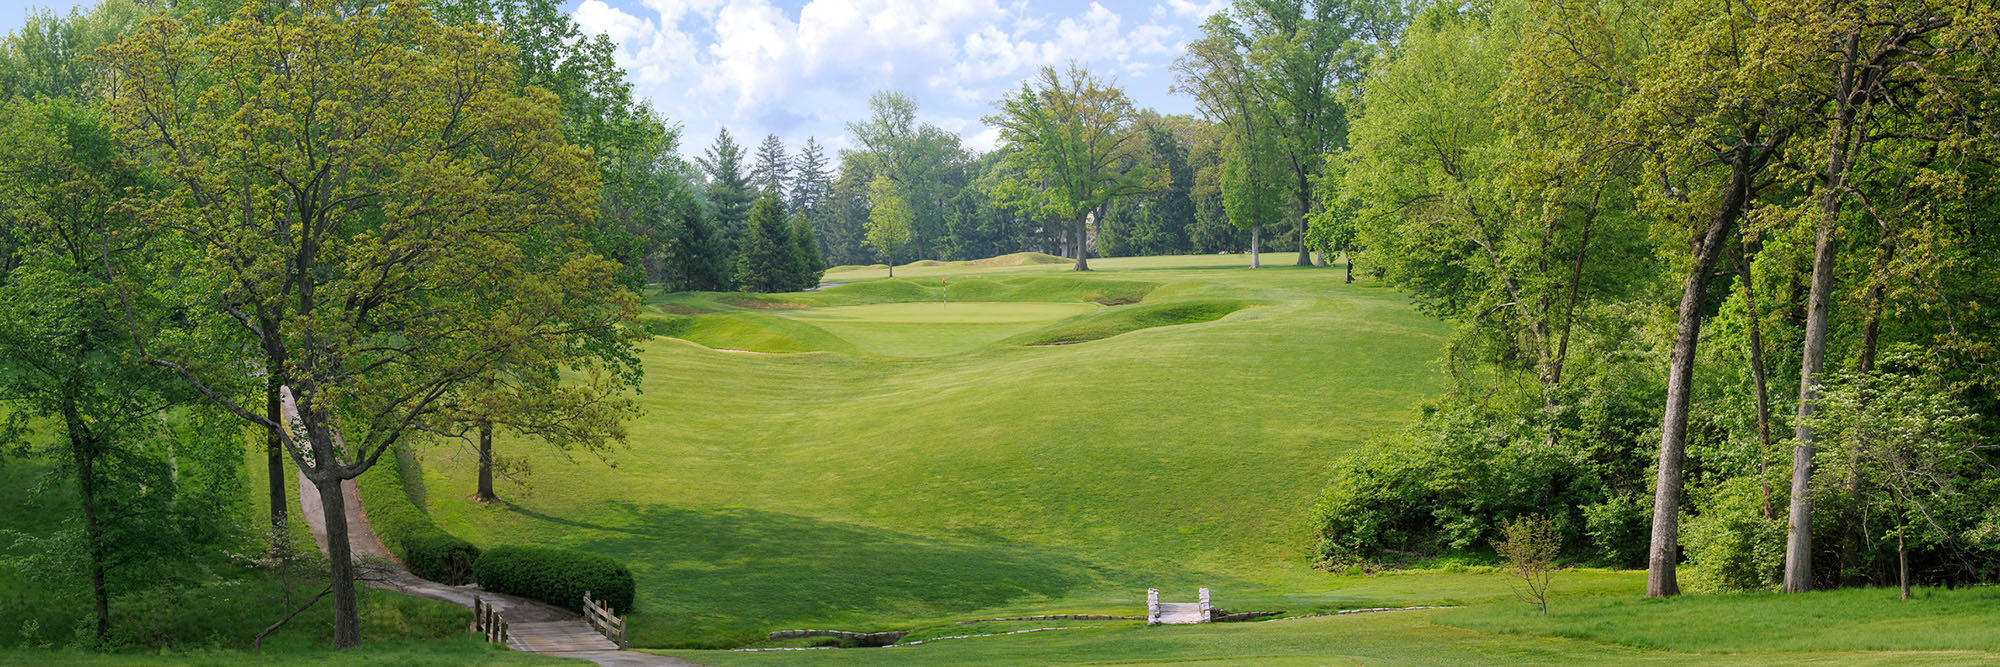 Golf Course Image - St. Louis Country Club No. 12